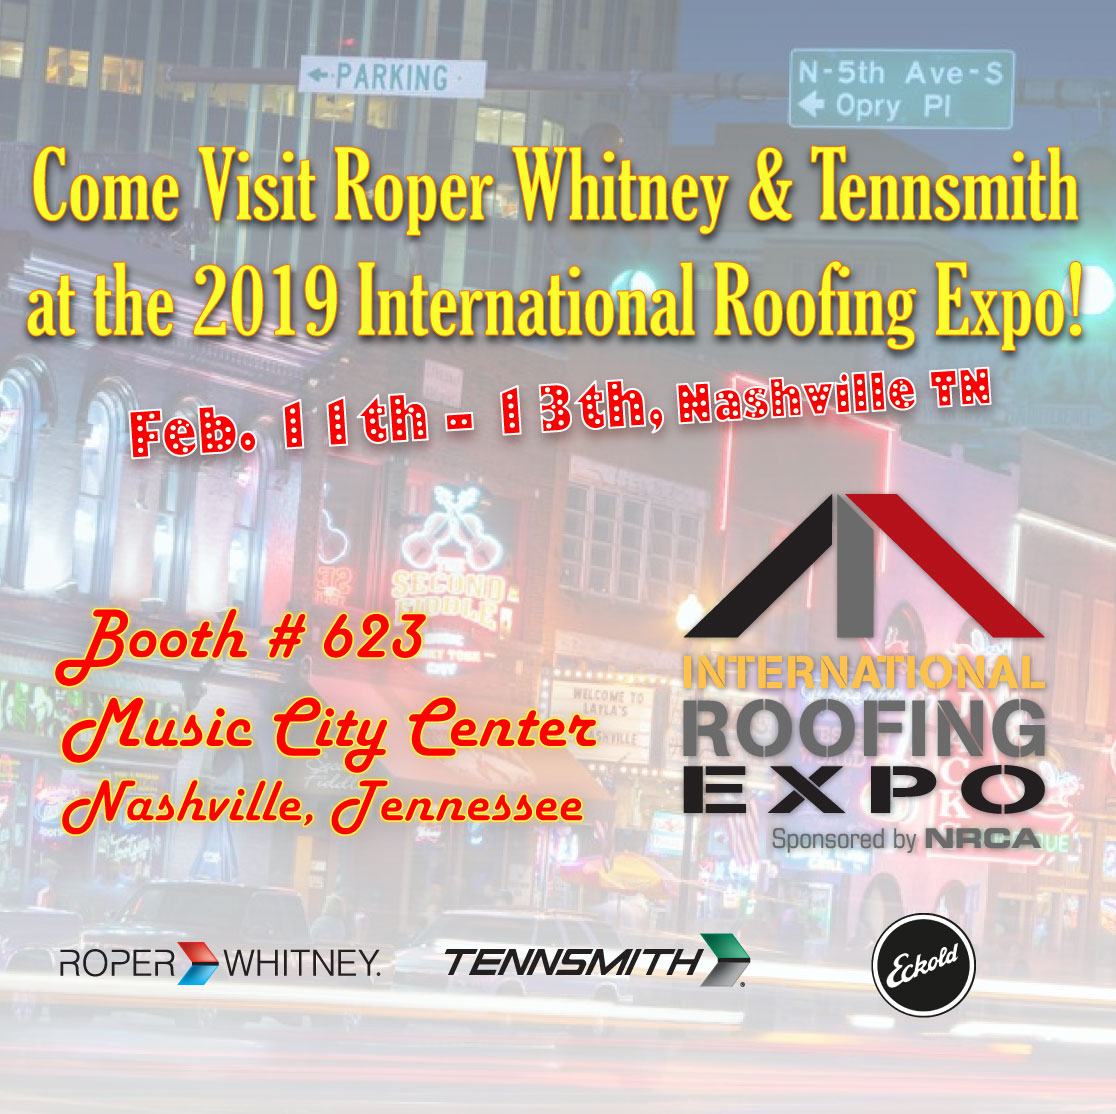 Come Visit Us at the International Roofing Expo: Feb 11-13, Nashville, TN